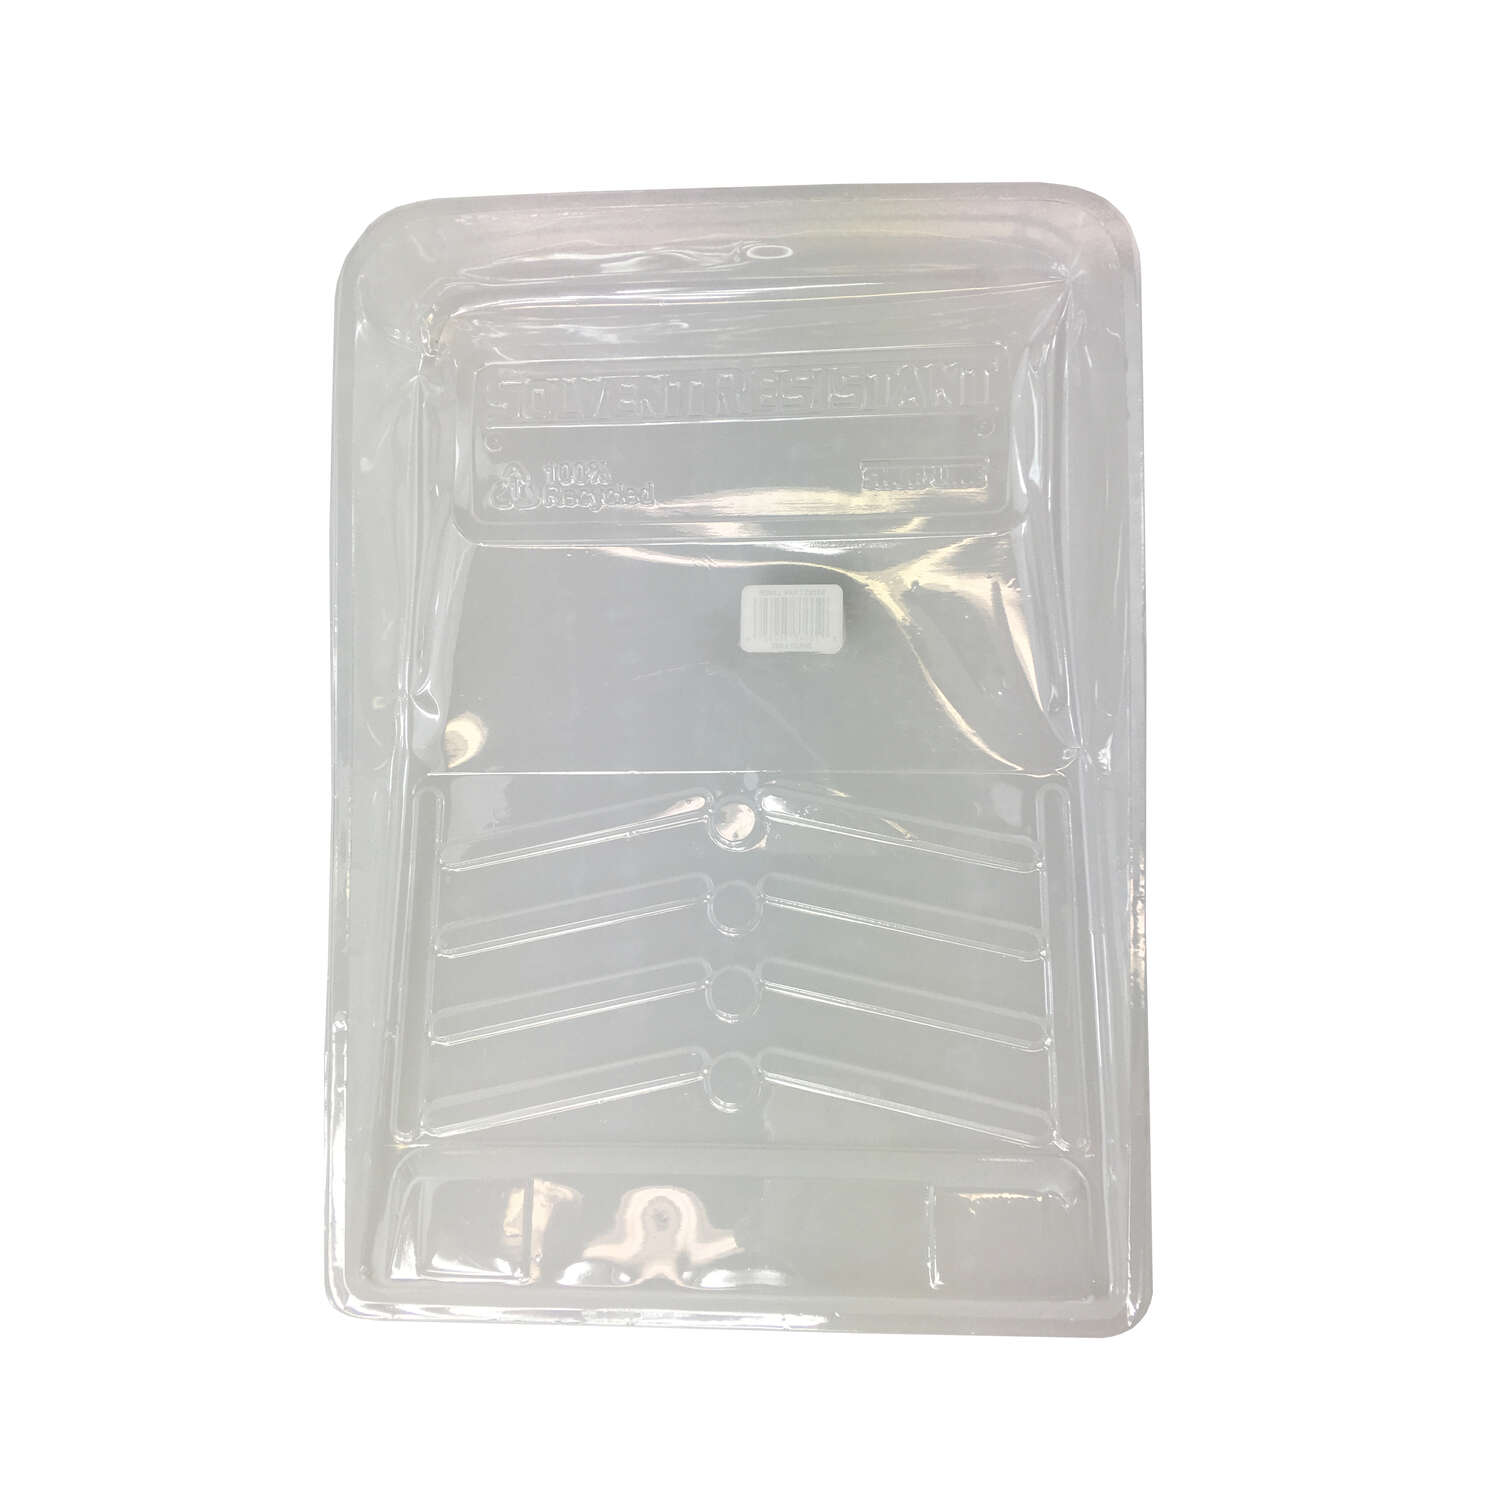 Shur-Line Plastic 11 in. W x 14.9 in. L Disposable Paint Tray Liner